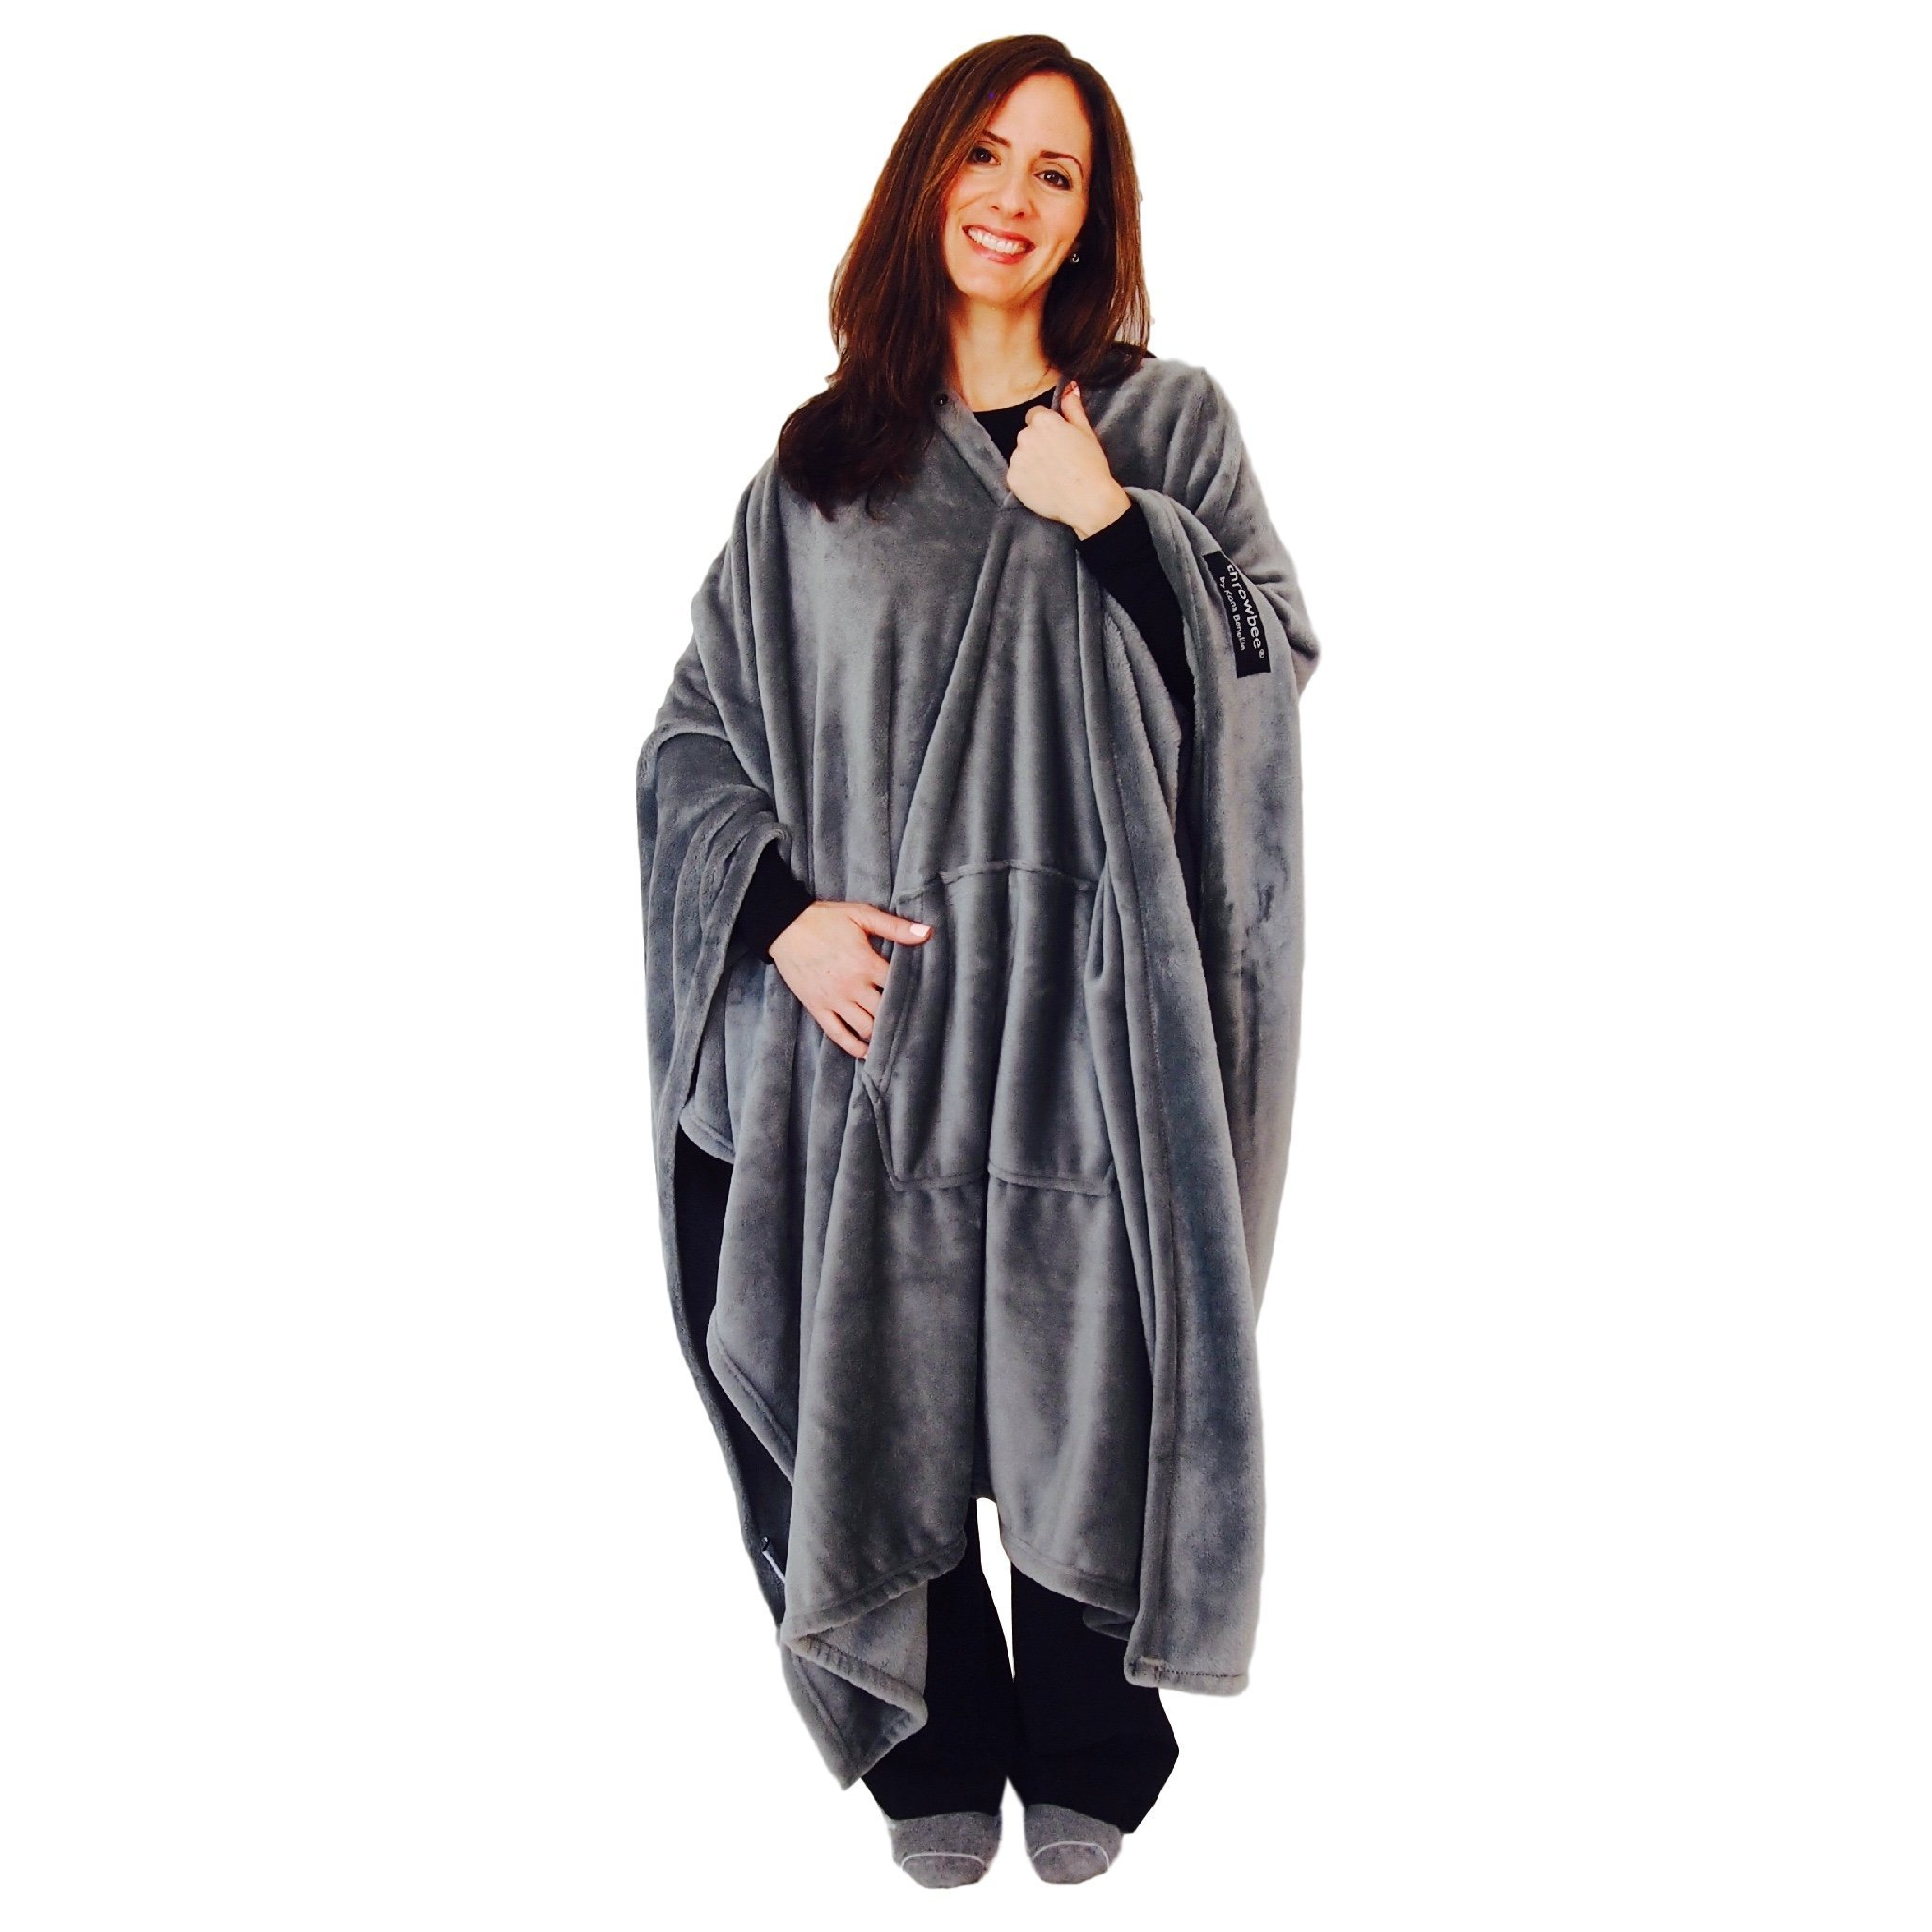 throwbee Original Blanket-Poncho Gray Grey (Yay! NO Sleeves) Wearable Throw The Most Comfortable and Softest Ever!!! Indoors or Outdoors - Men Women Kids